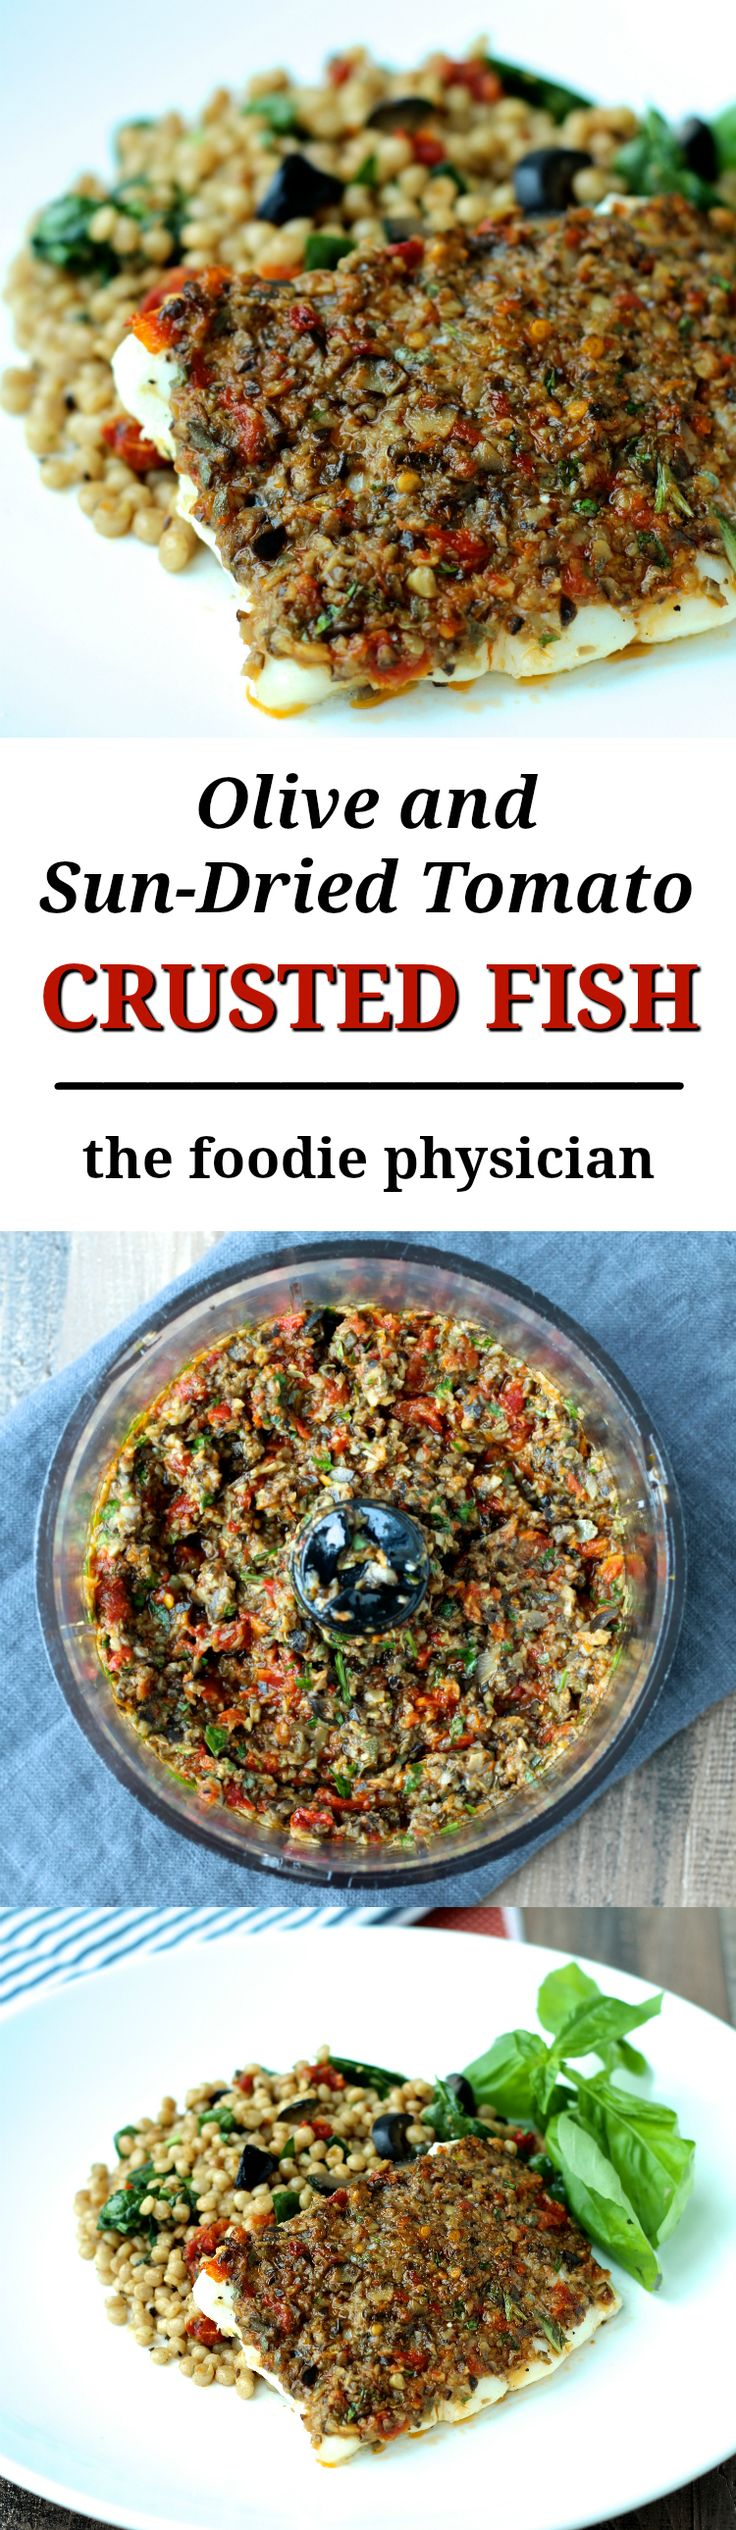 Olive and Sundried Tomato Crusted Fish- featuring healthy Mediterranean ingredients, this colorful, no-fuss dish is perfect for a busy weeknight. | @foodiephysician